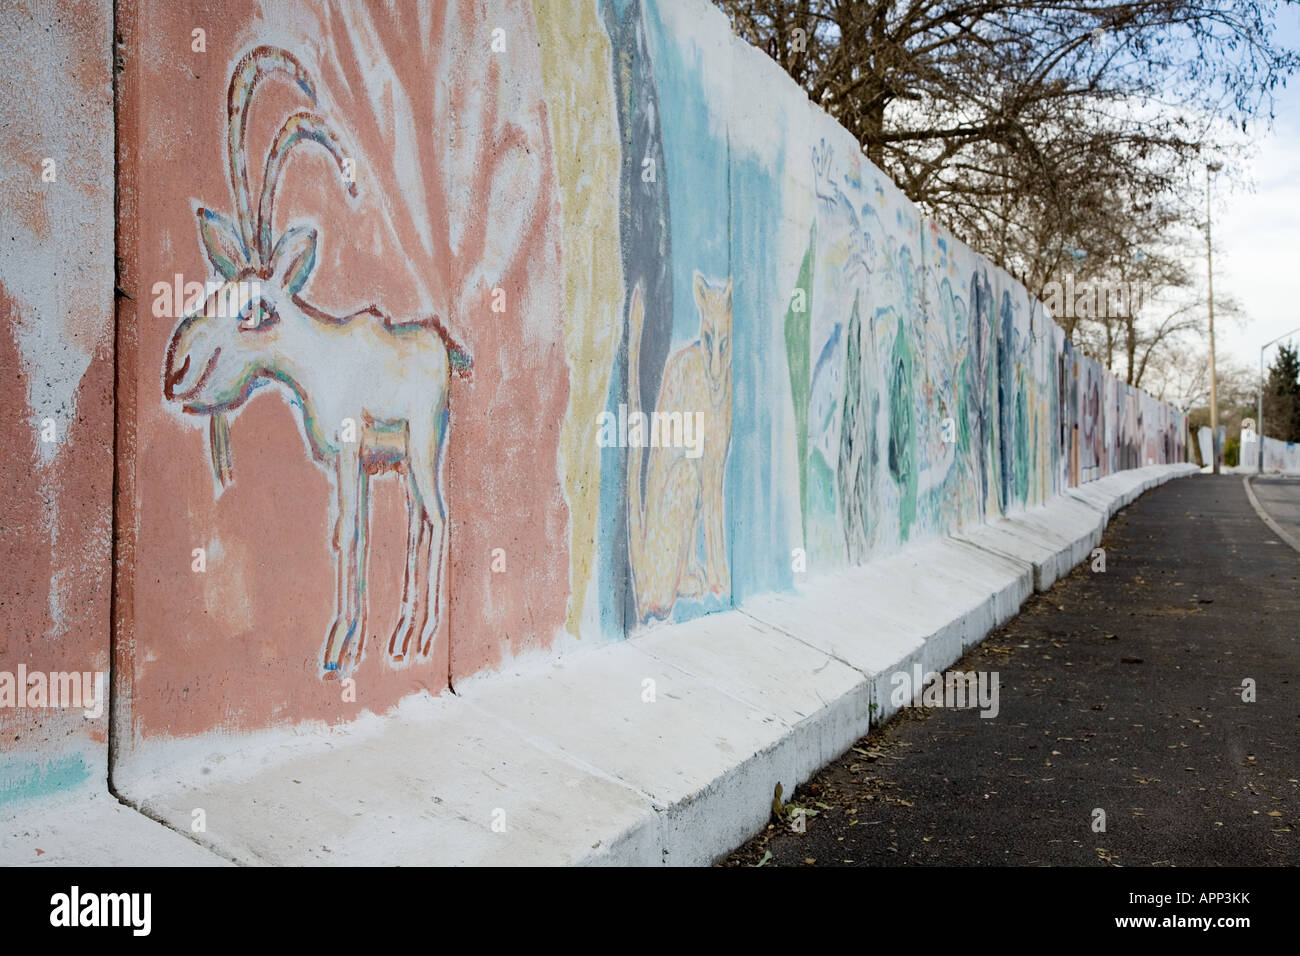 Stock Photo of Decorations on a Concrete Security Barrier in Giloh Jerusalem - Stock Image